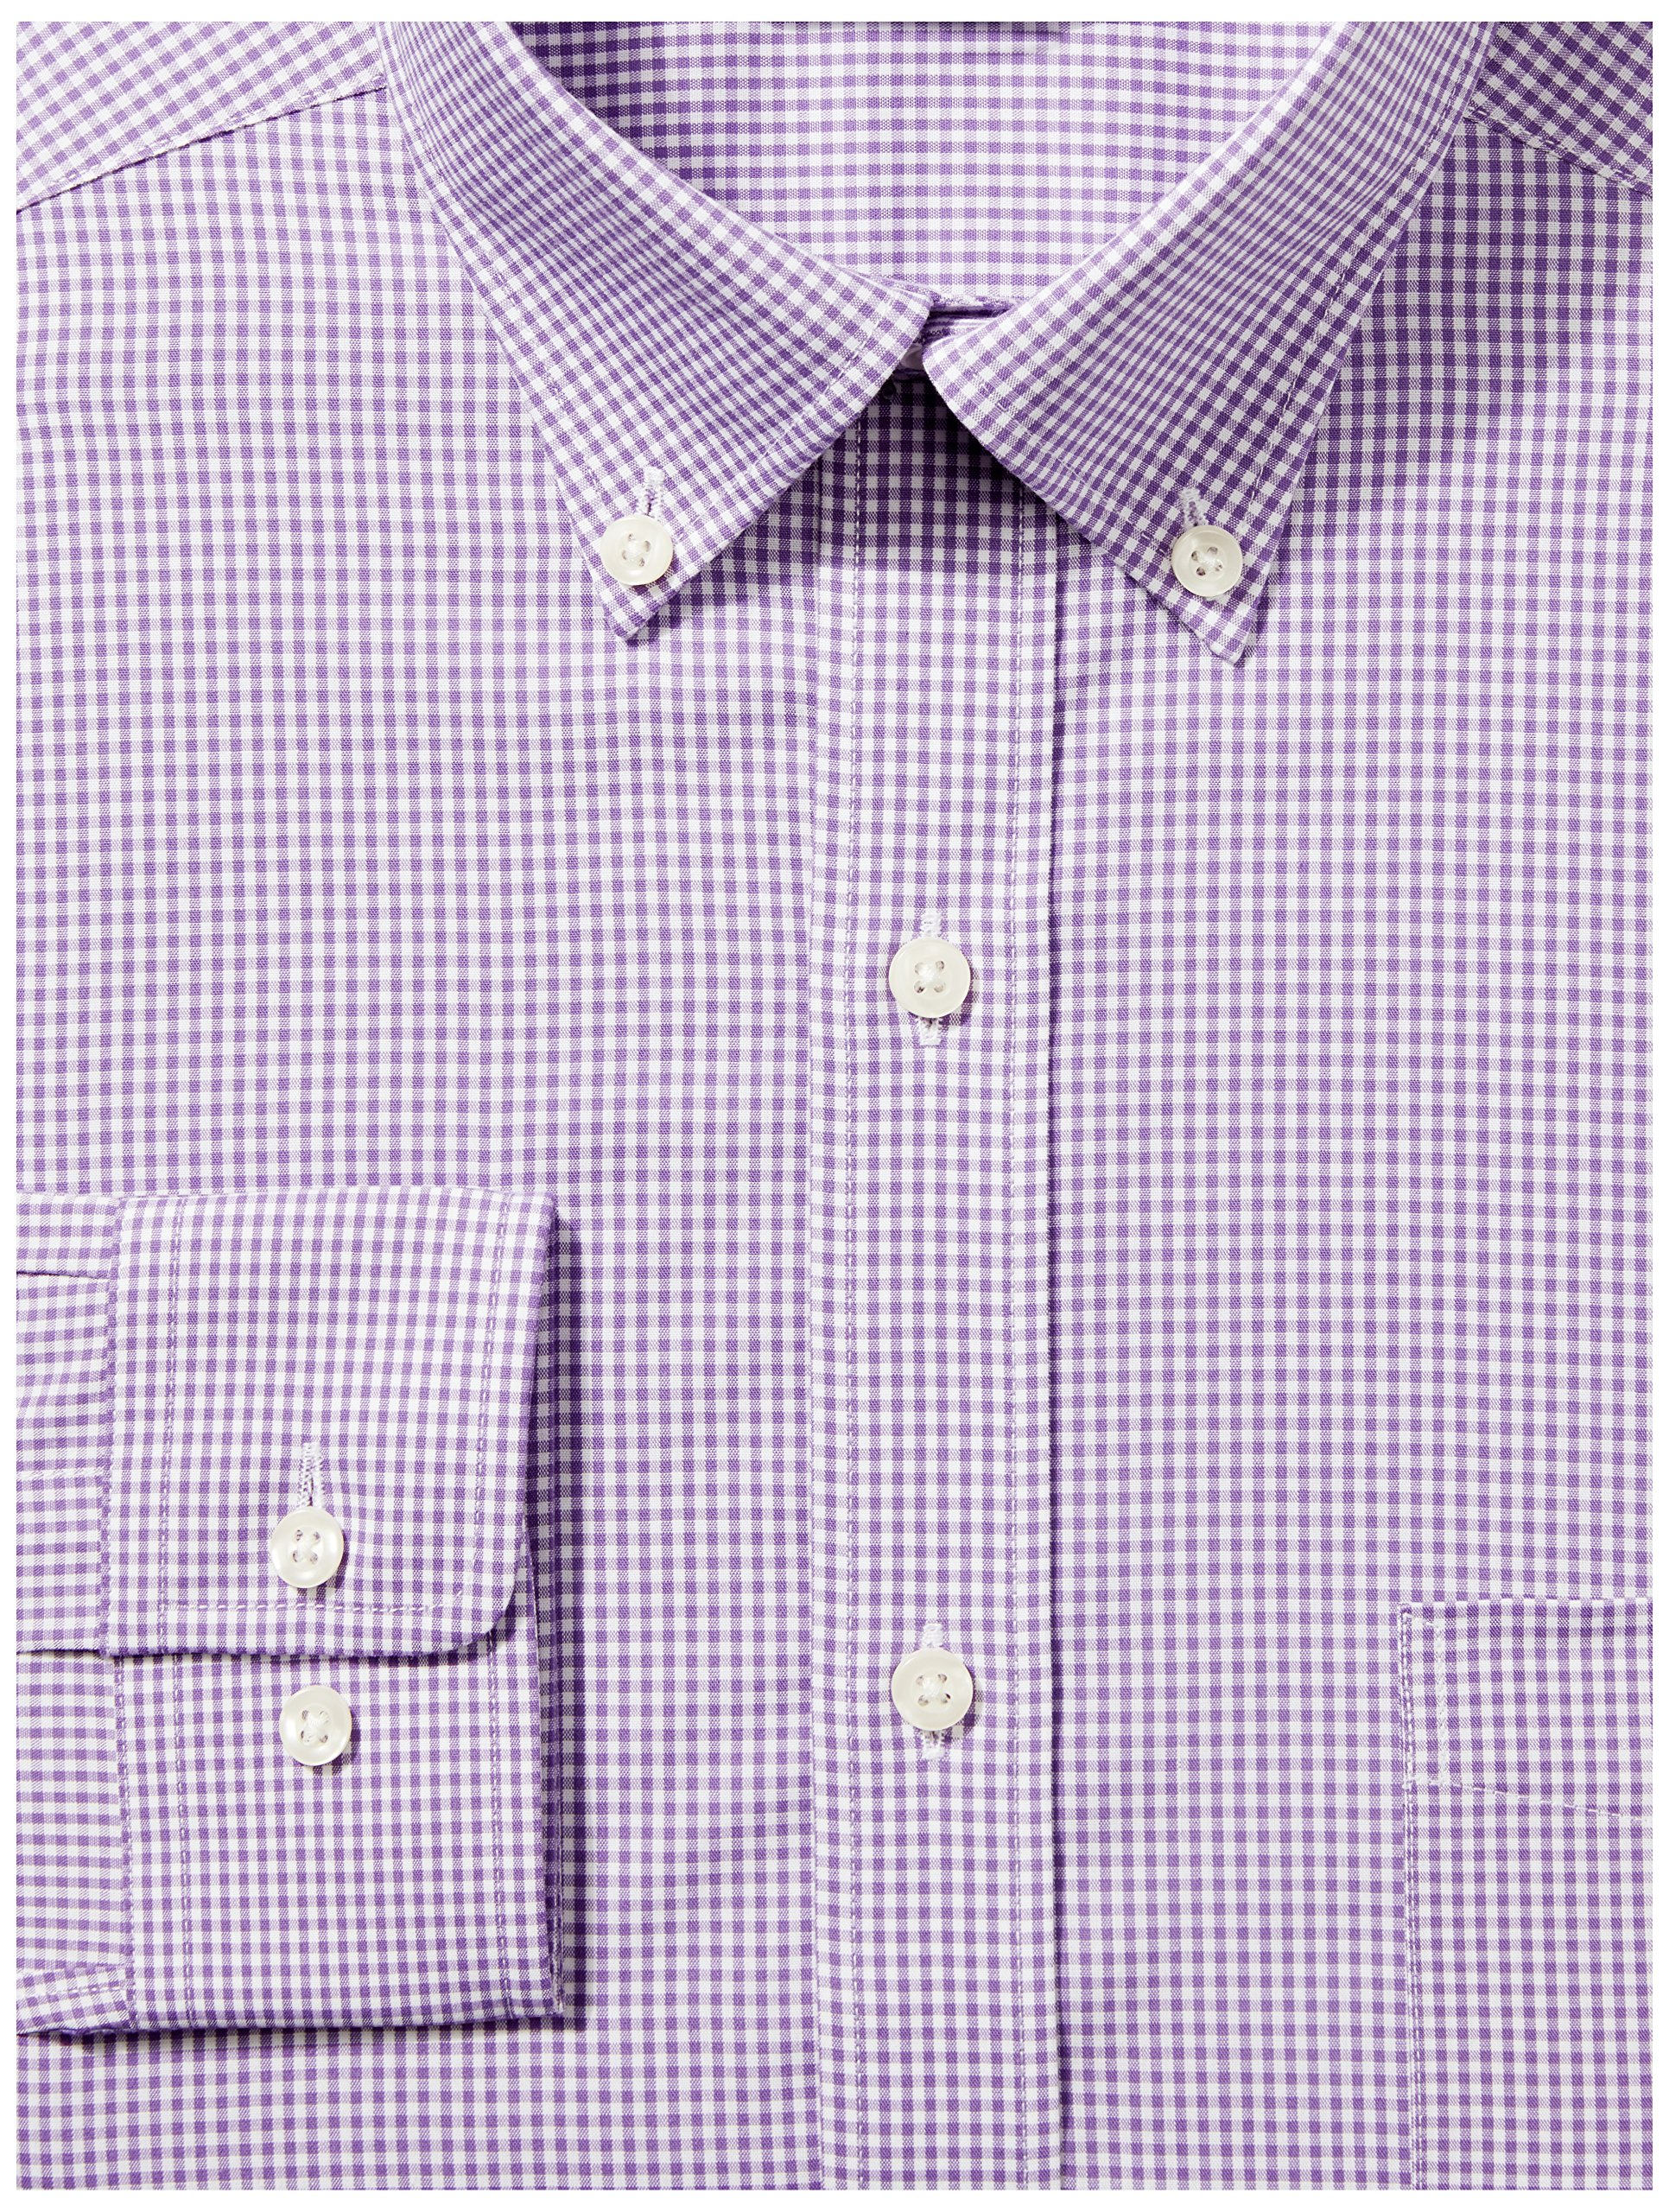 Buttoned Down Men's Classic Fit Button-Collar Non-Iron Dress Shirt, Purple Small Gingham, 16.5'' Neck 36'' Sleeve by Buttoned Down (Image #2)